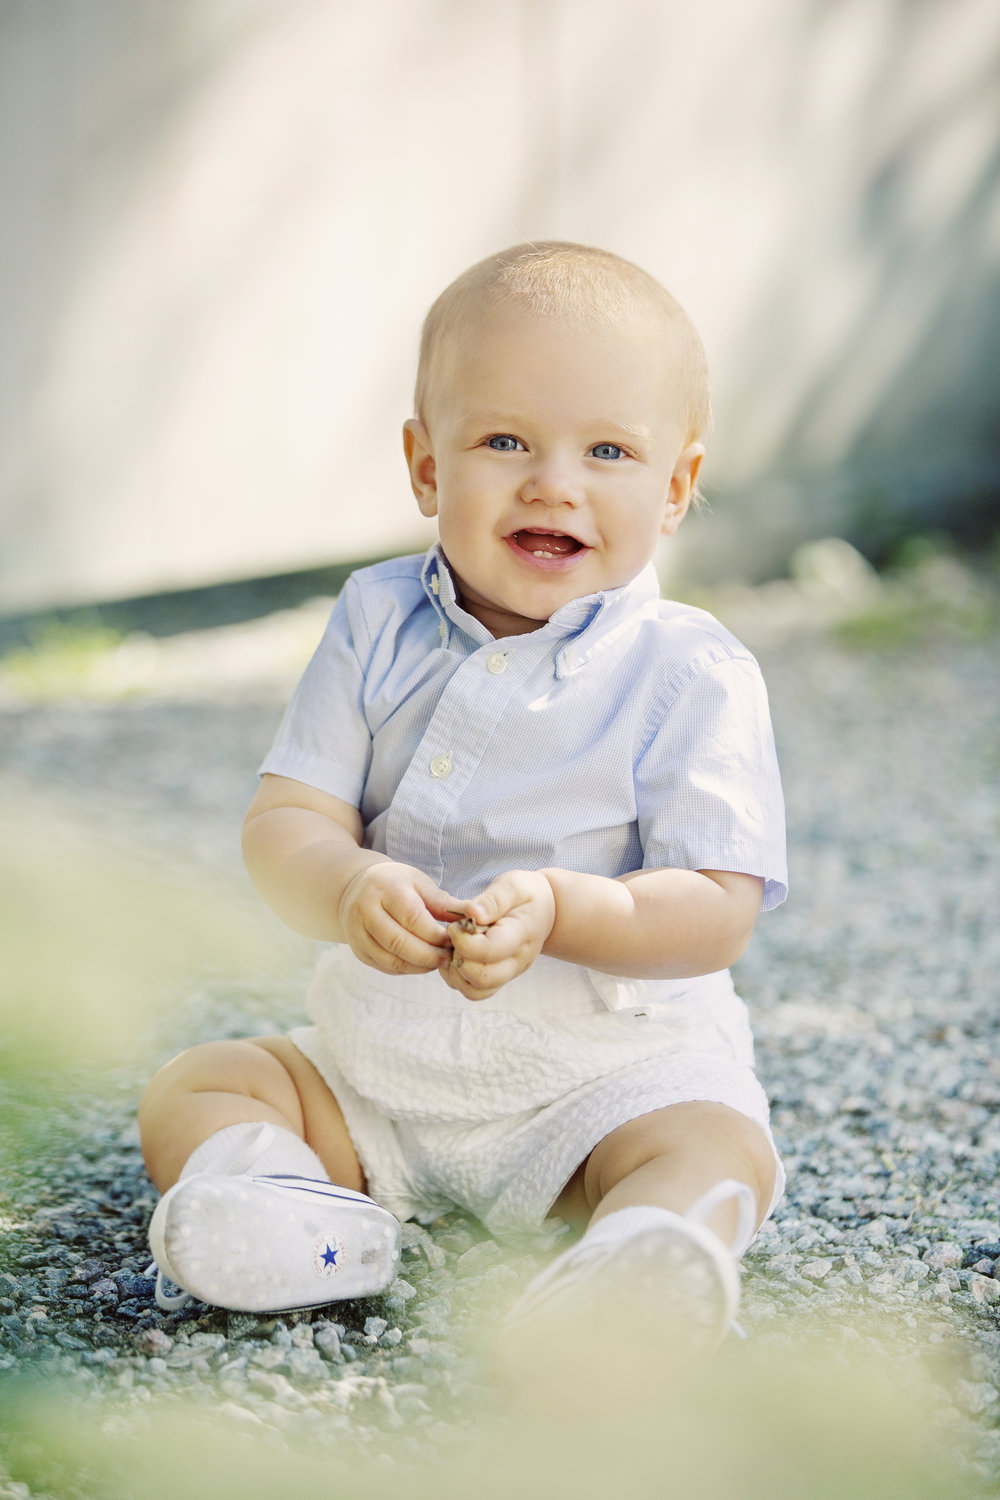 Prince Gabriel - Gabriel Carl Walther was born on 31 August 2017 to Prince Carl Philip and Princess Sofia of Sweden as their second son in Danderyd, Sweden. He has one older brother, Prince Alexander (b. 2016).He is sixth in line to the Swedish throne.Photo: Erika Gerdemark, Kungahuset.se